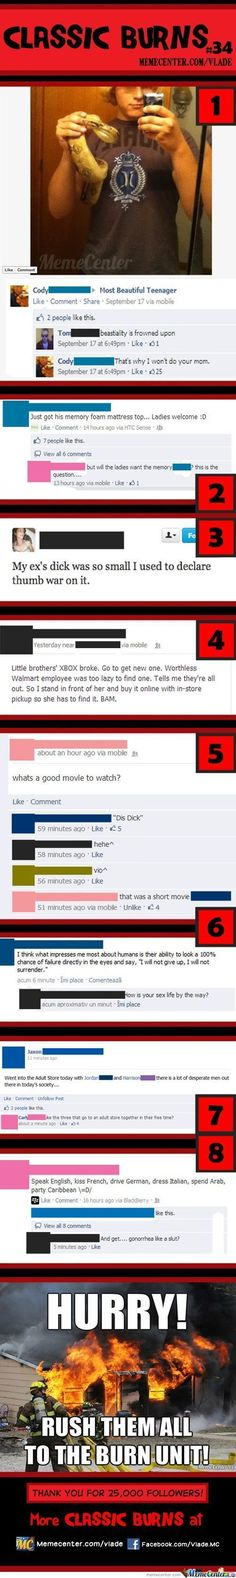 Of The Best Comebacks In The History Of Burns Comebacks - 32 hilarious facebook comebacks that burn too much to be forgotten